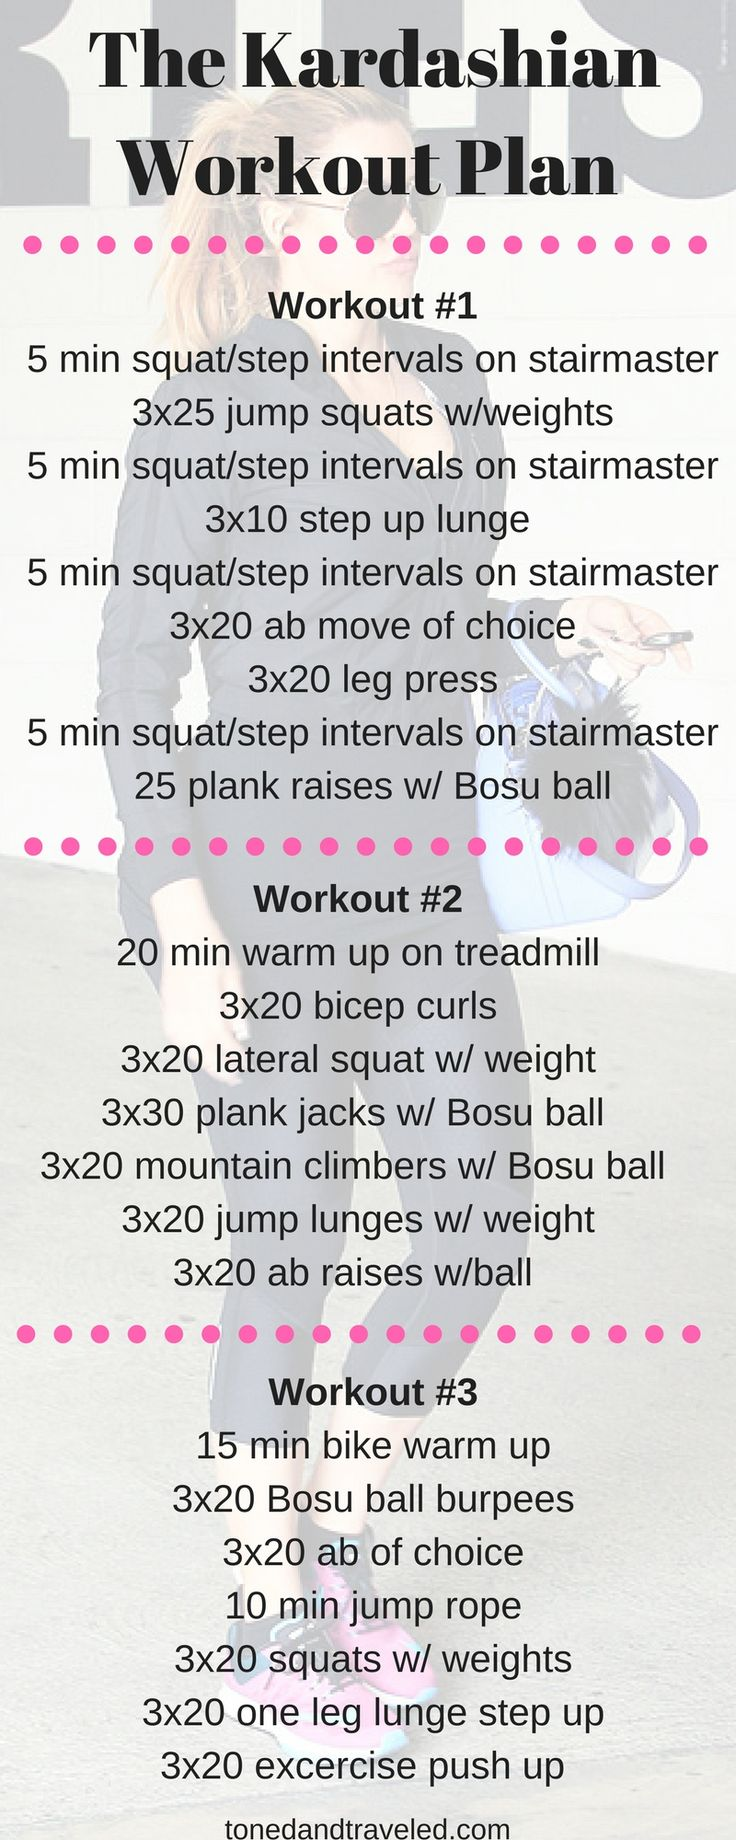 If there is one thing I have learned from watching the Kardashian's snapchat stories, it is that they know how to workout. Well, at least their trainers know how to. The workouts range from high intensity intervals to isolated movements. With a major focus on their assets, the workouts increase stamina, build muscle and focus on strength. If you have tried the week long Kardashian workout plan and could still move on Sunday – you must have been doing something wrong. It is important to keep…